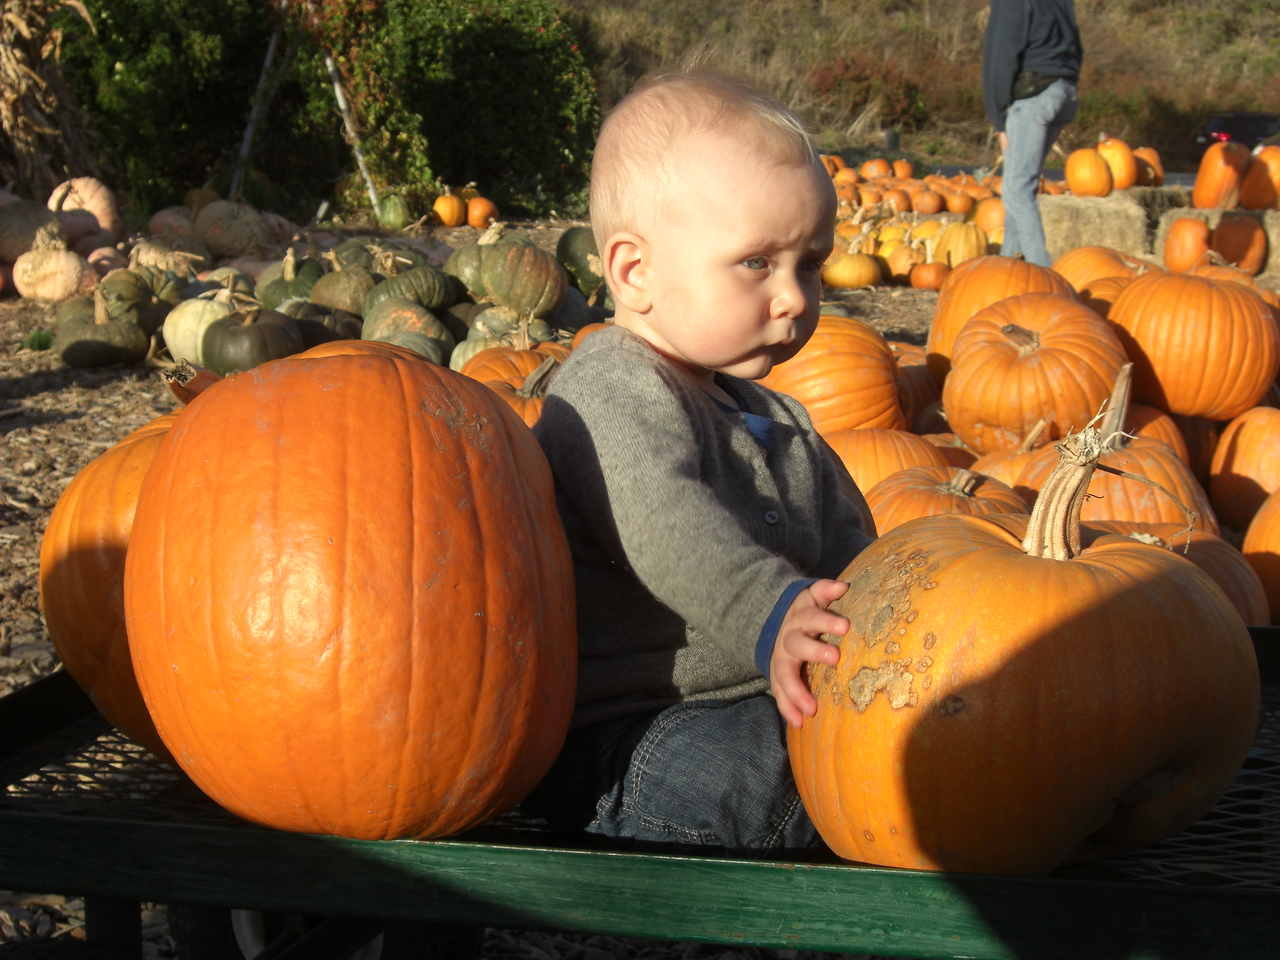 My first pumpkin patch